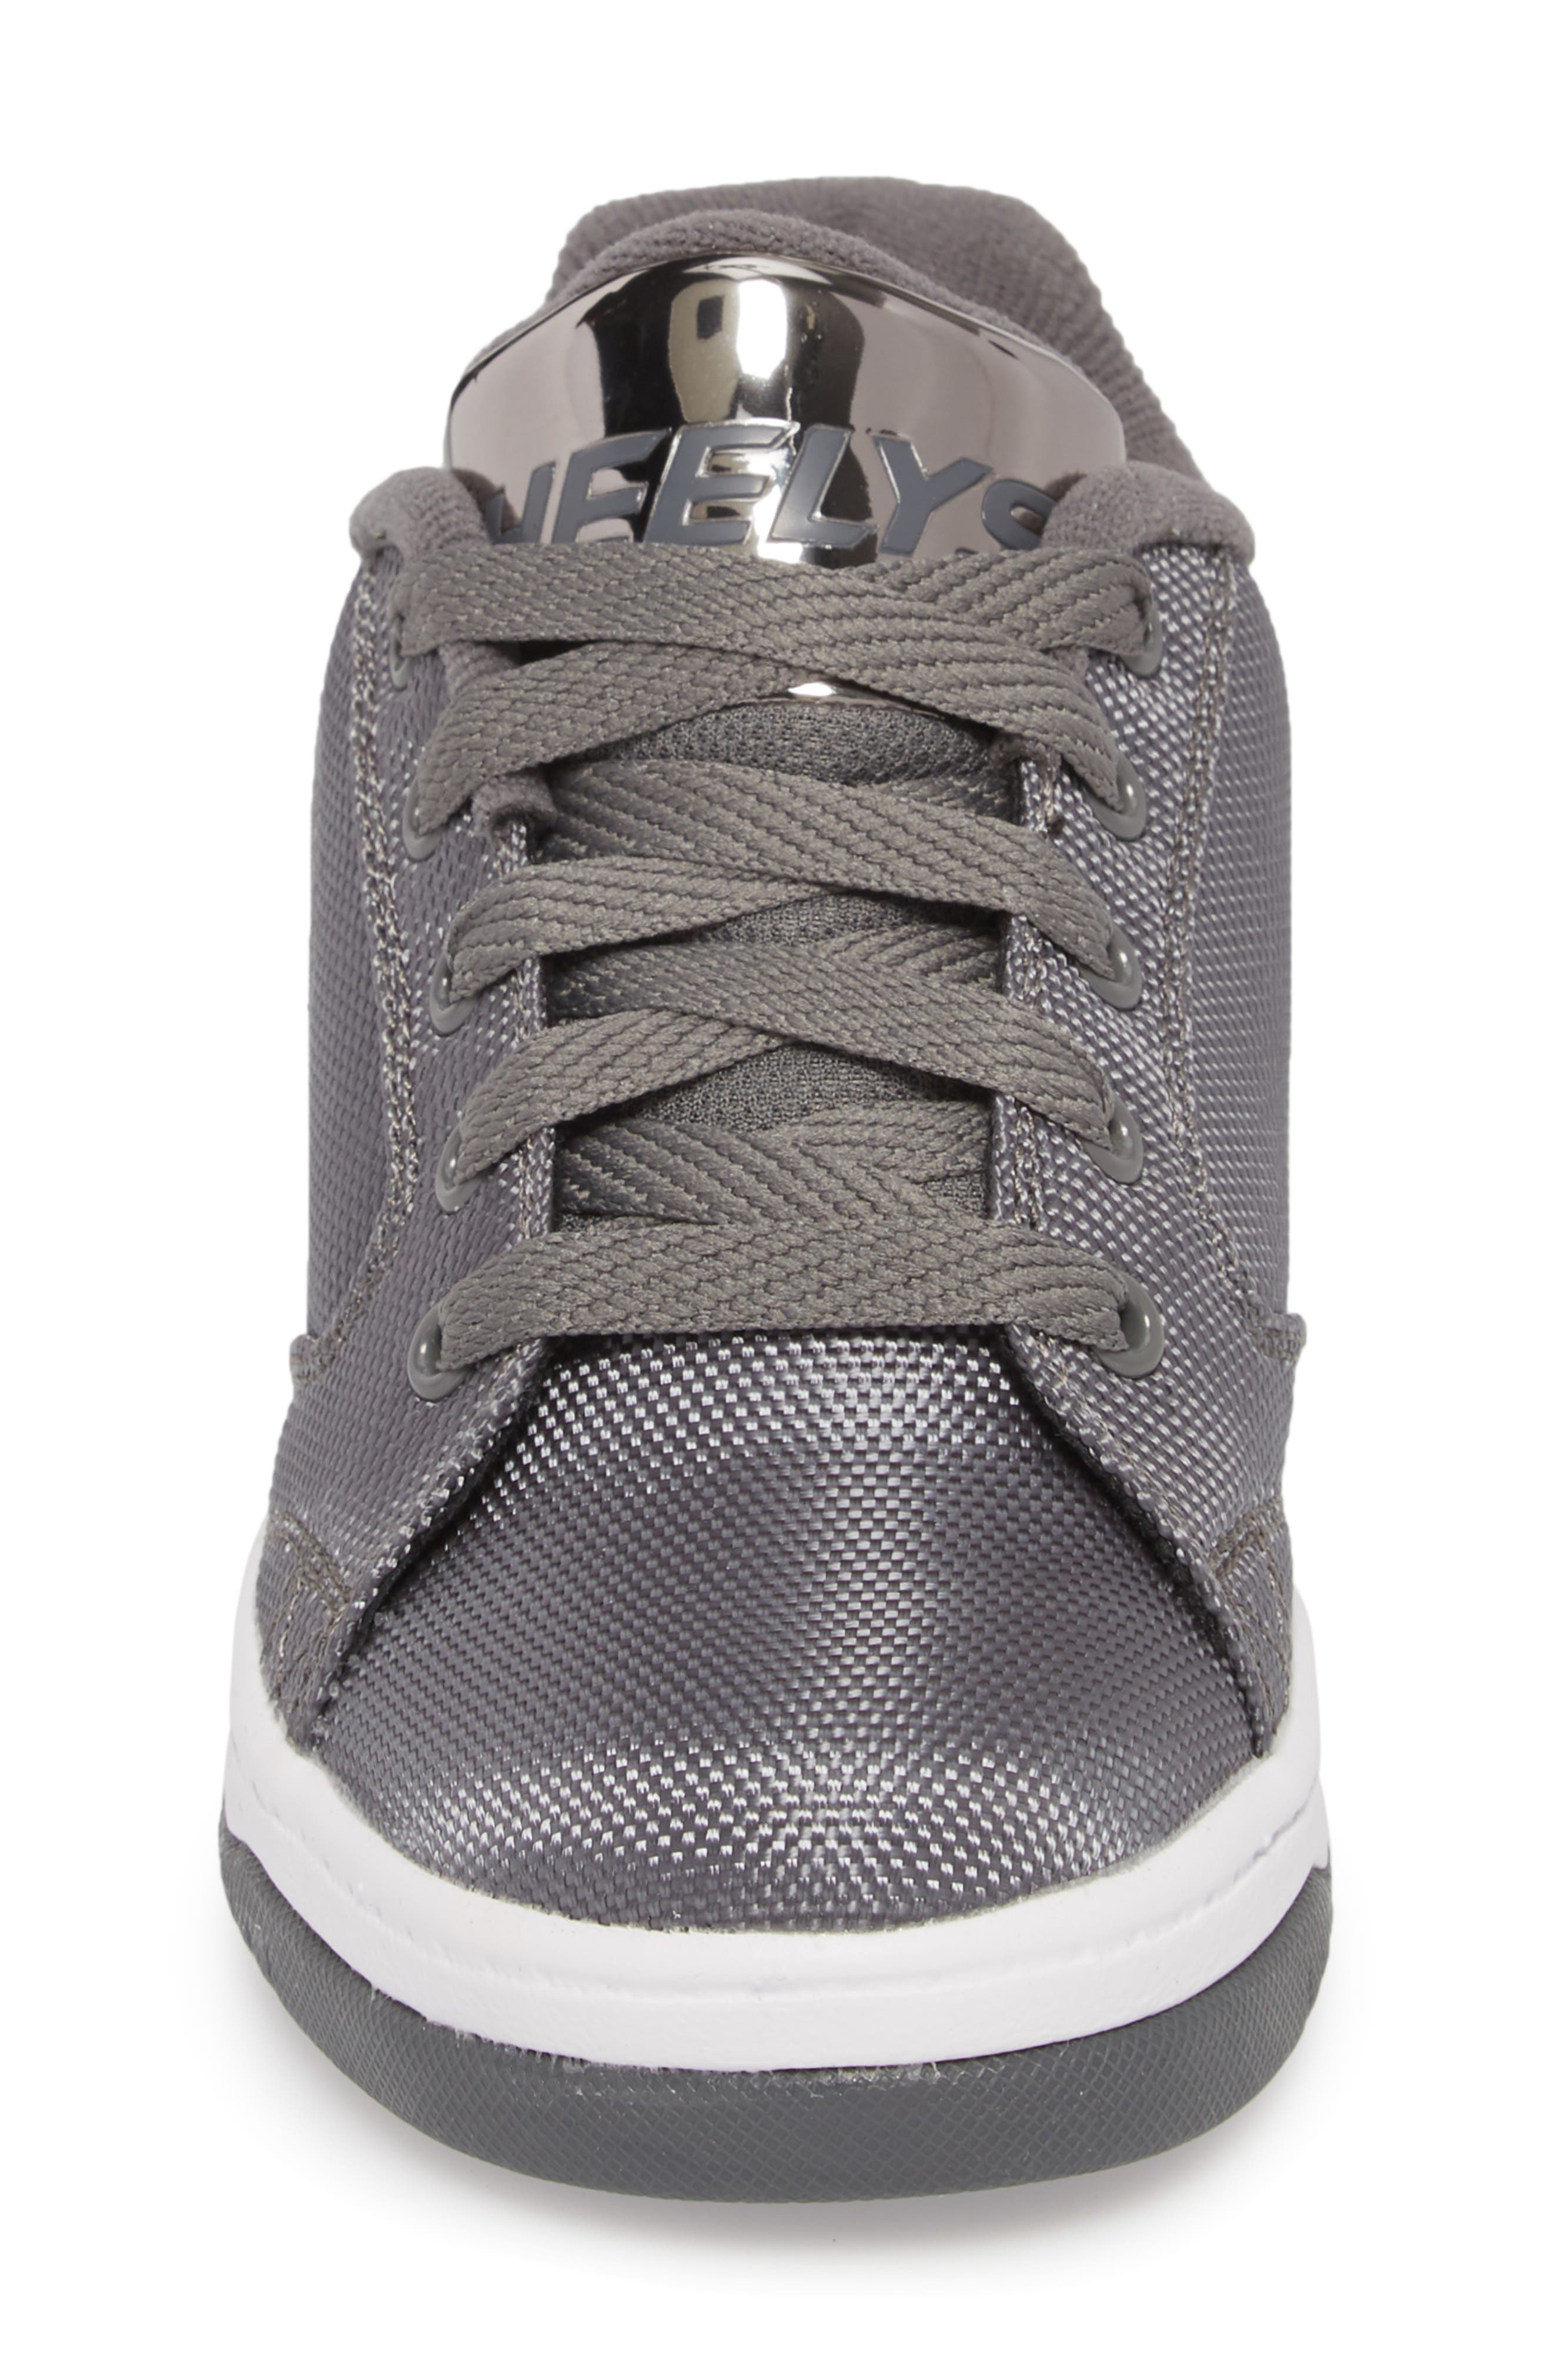 Heels Propel Ballistic Sneaker,                             Alternate thumbnail 4, color,                             CHARCOAL/ PEWTER